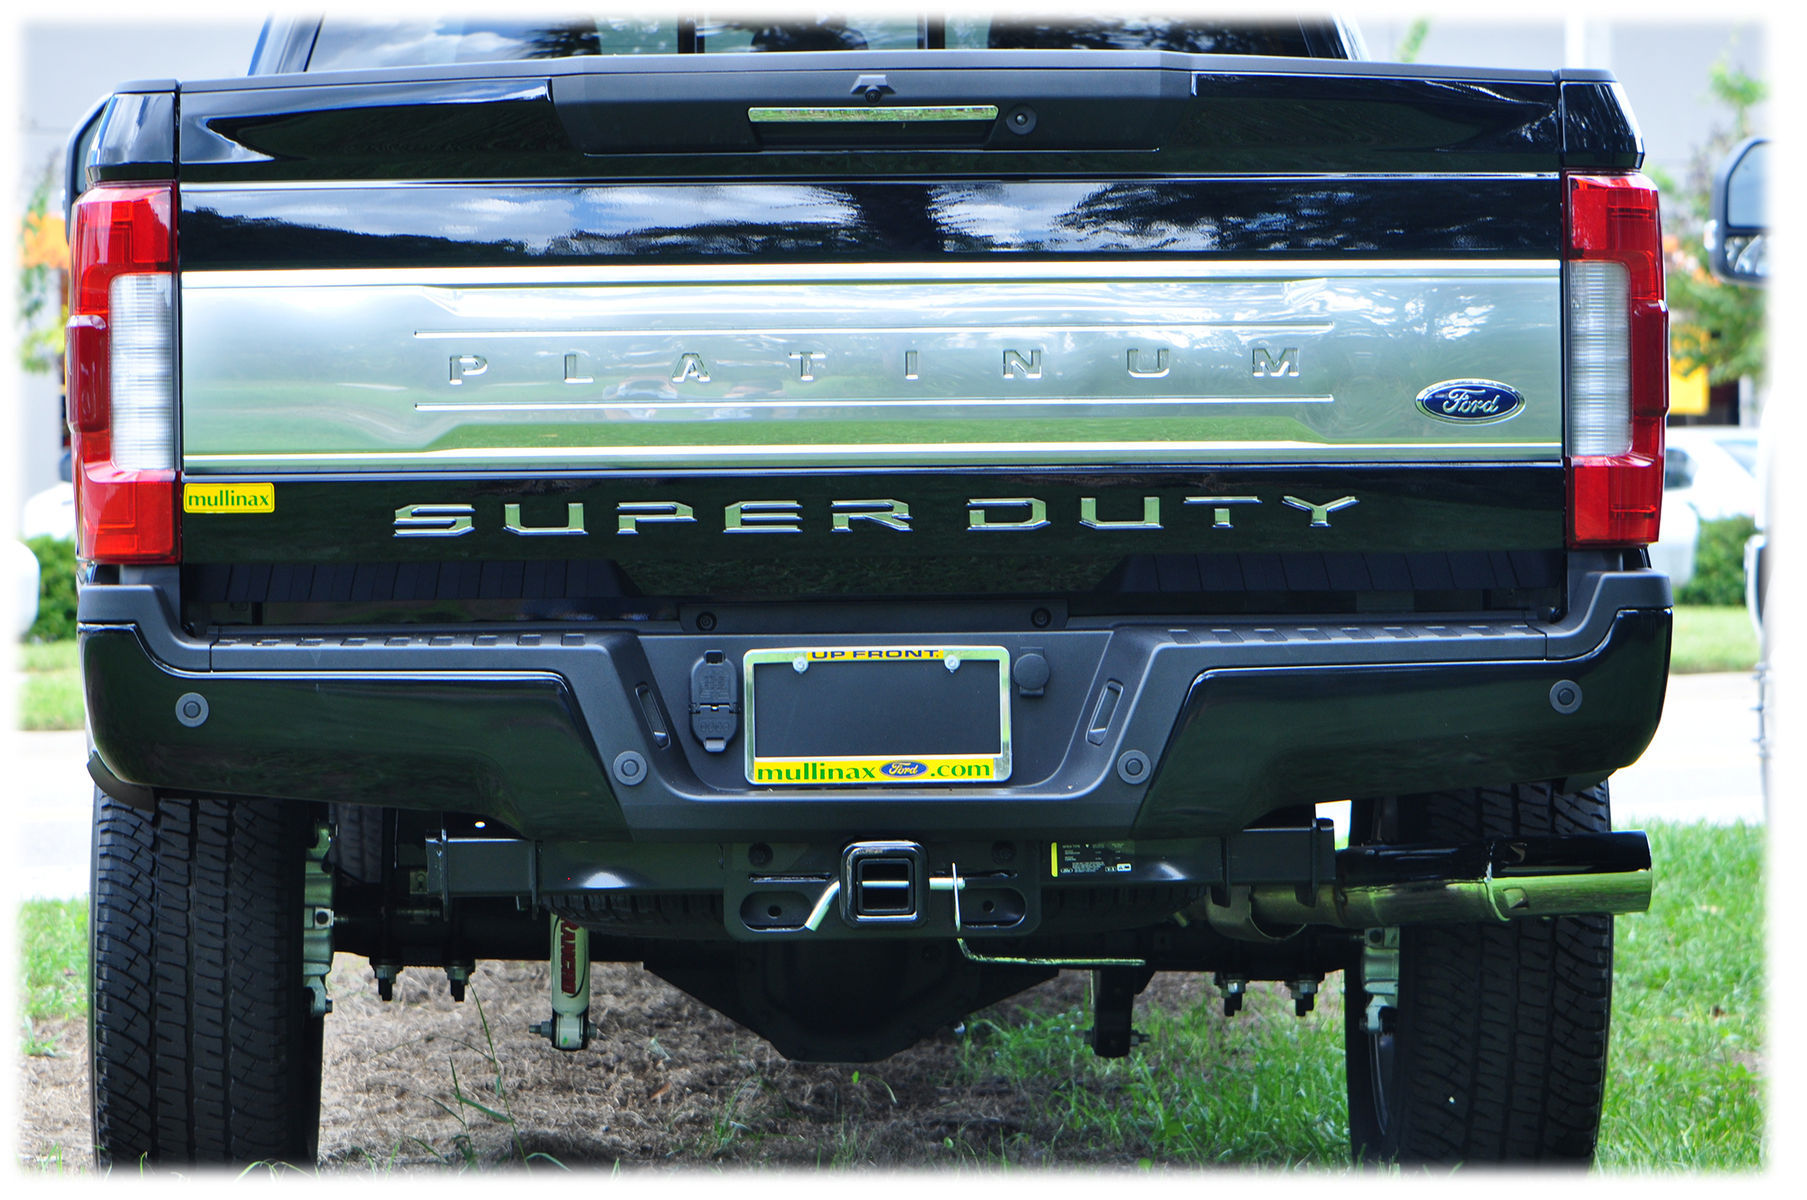 2017 Ford E-250 | 2017 Ford Super Duty - Tailgate Inserts